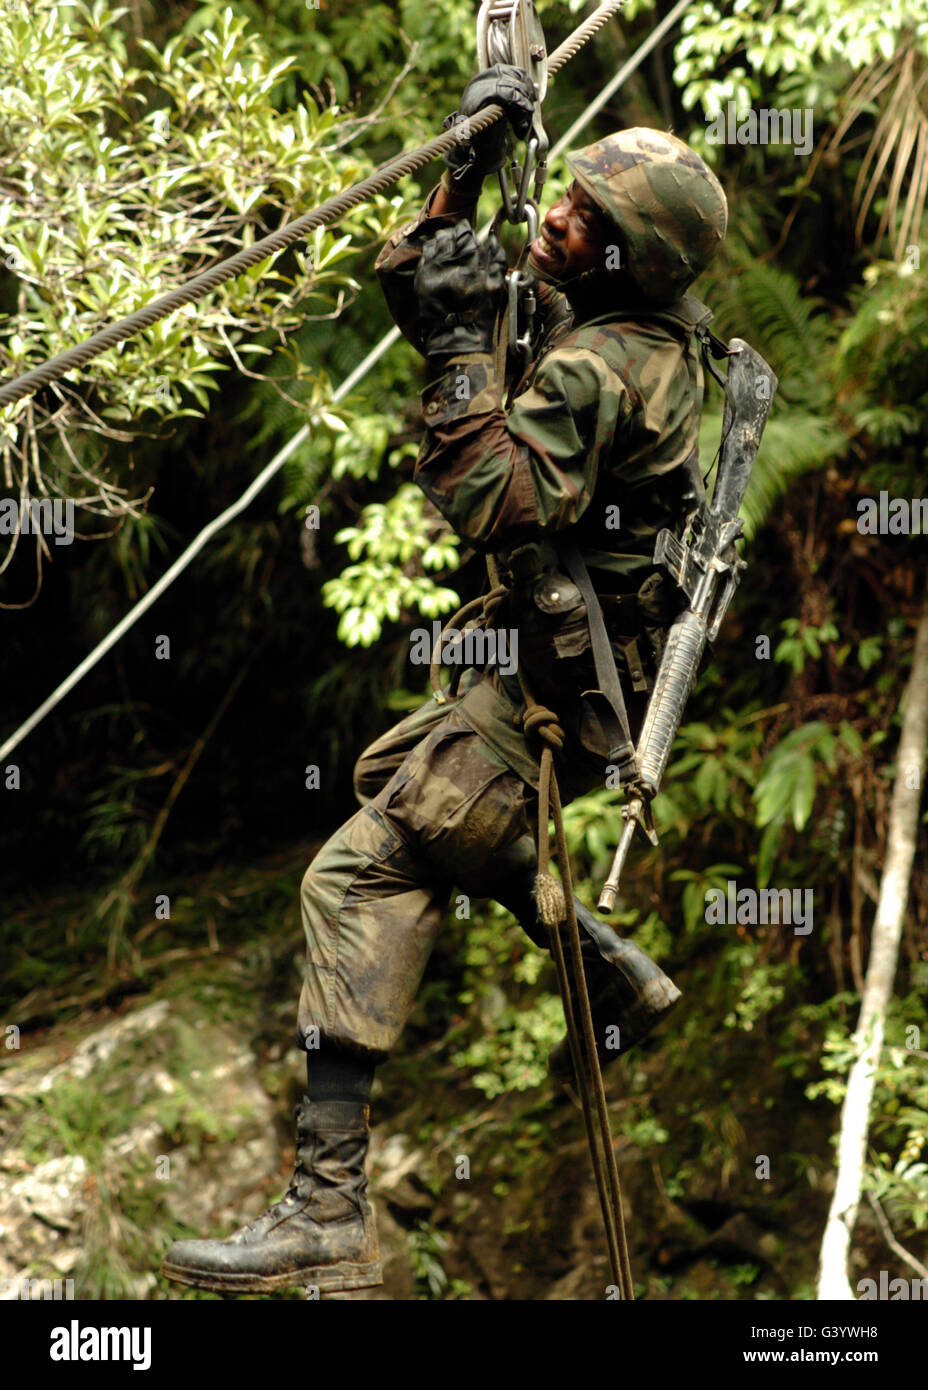 A soldier slides across a river using a pulley system. - Stock Image